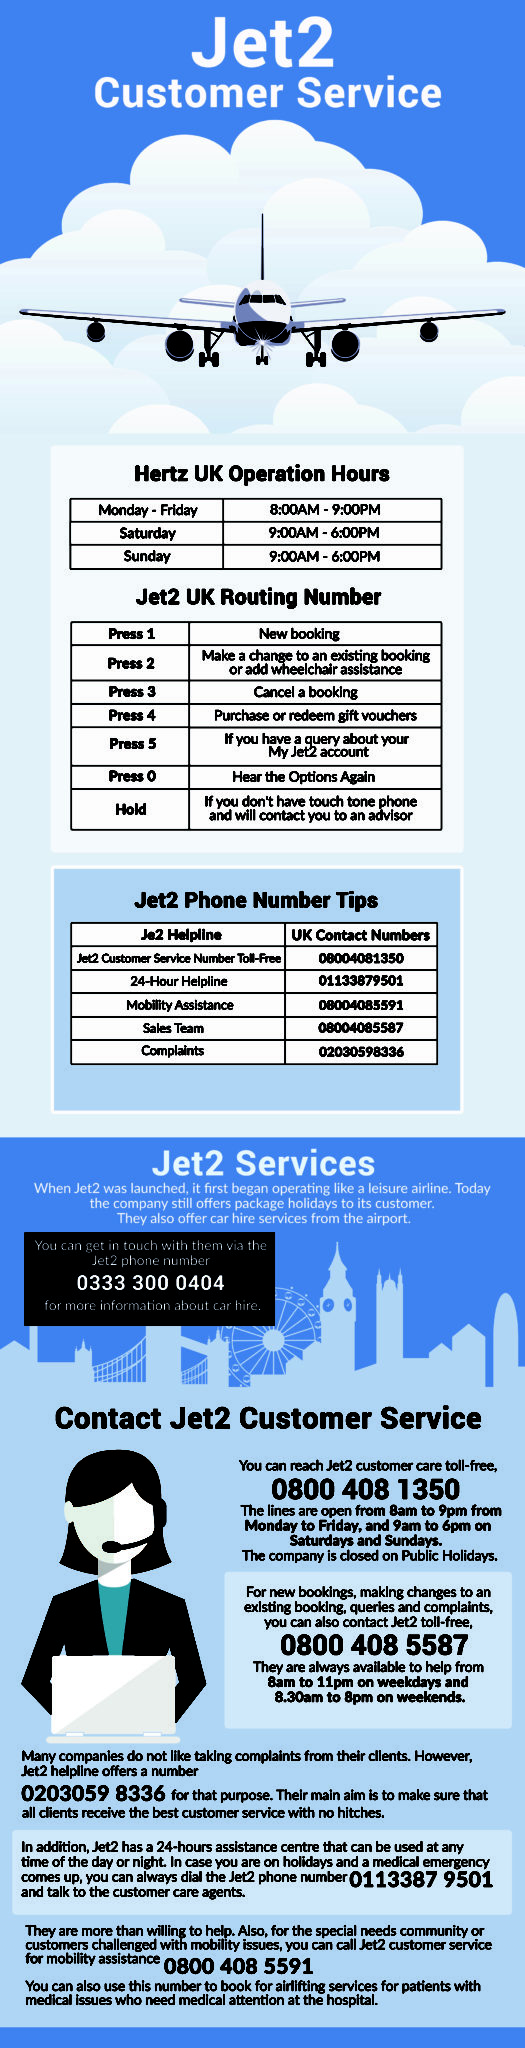 Jet2 Customer Service contact phone numbers